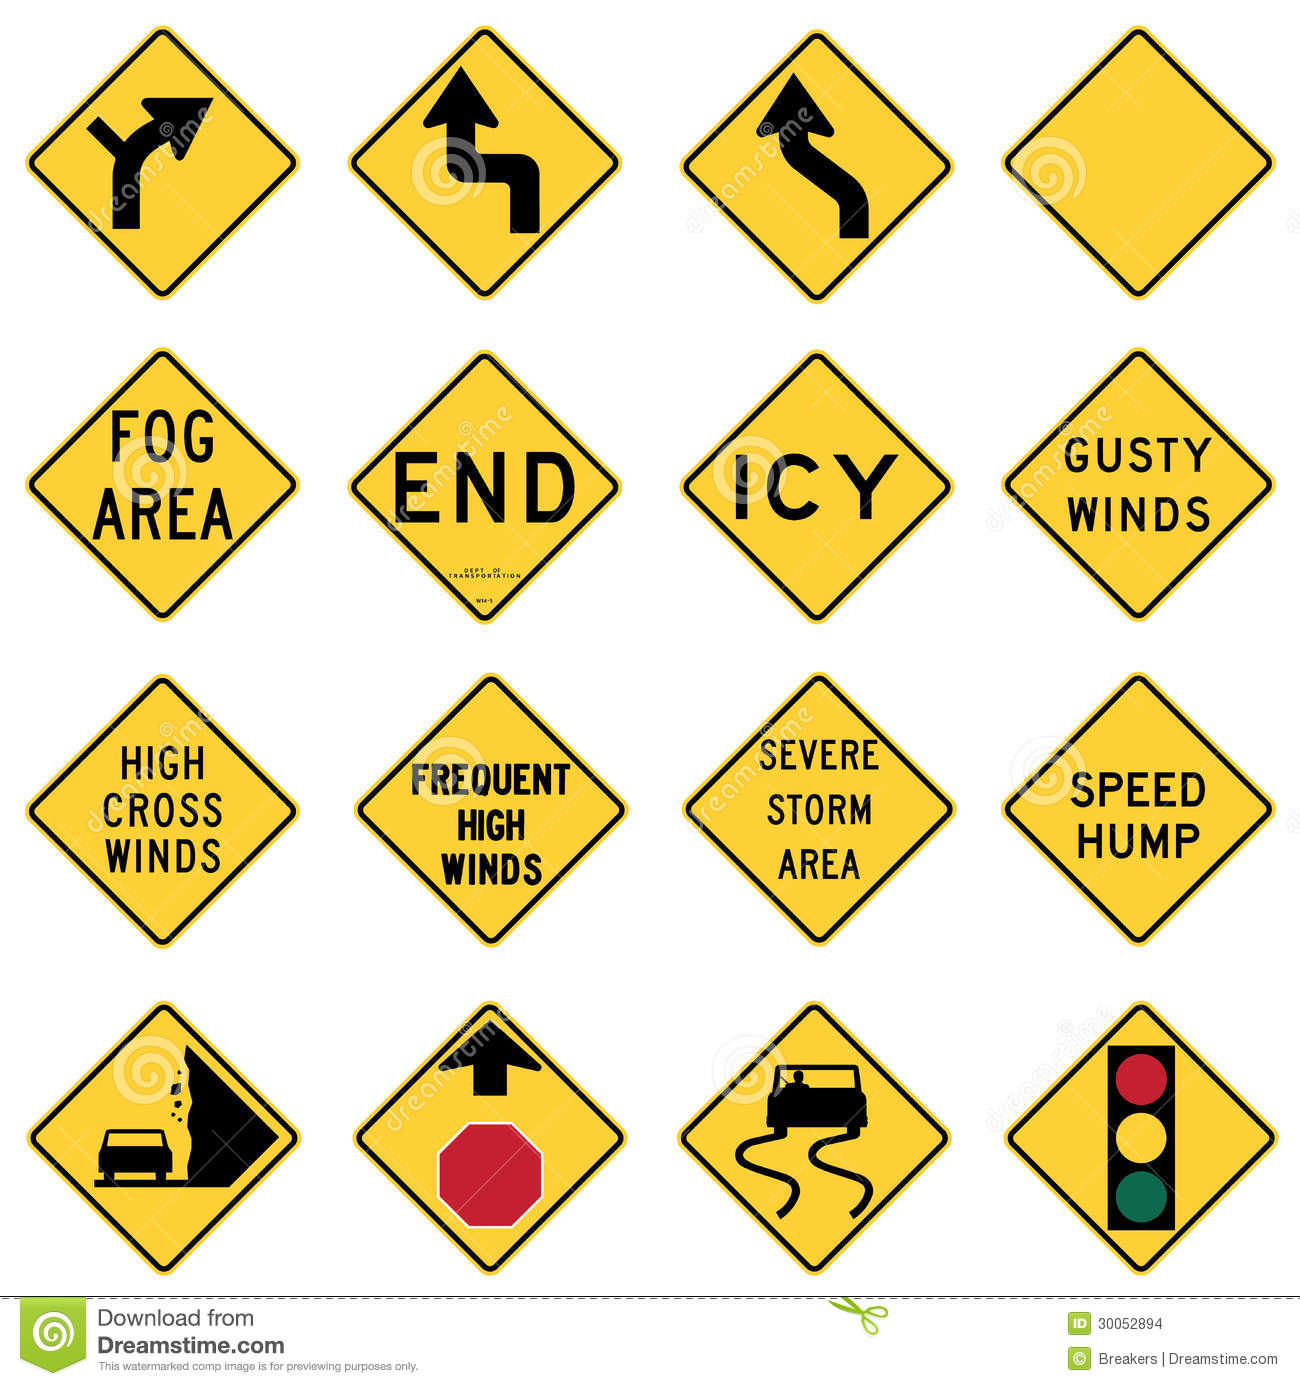 Traffic Warning Signs in the United States